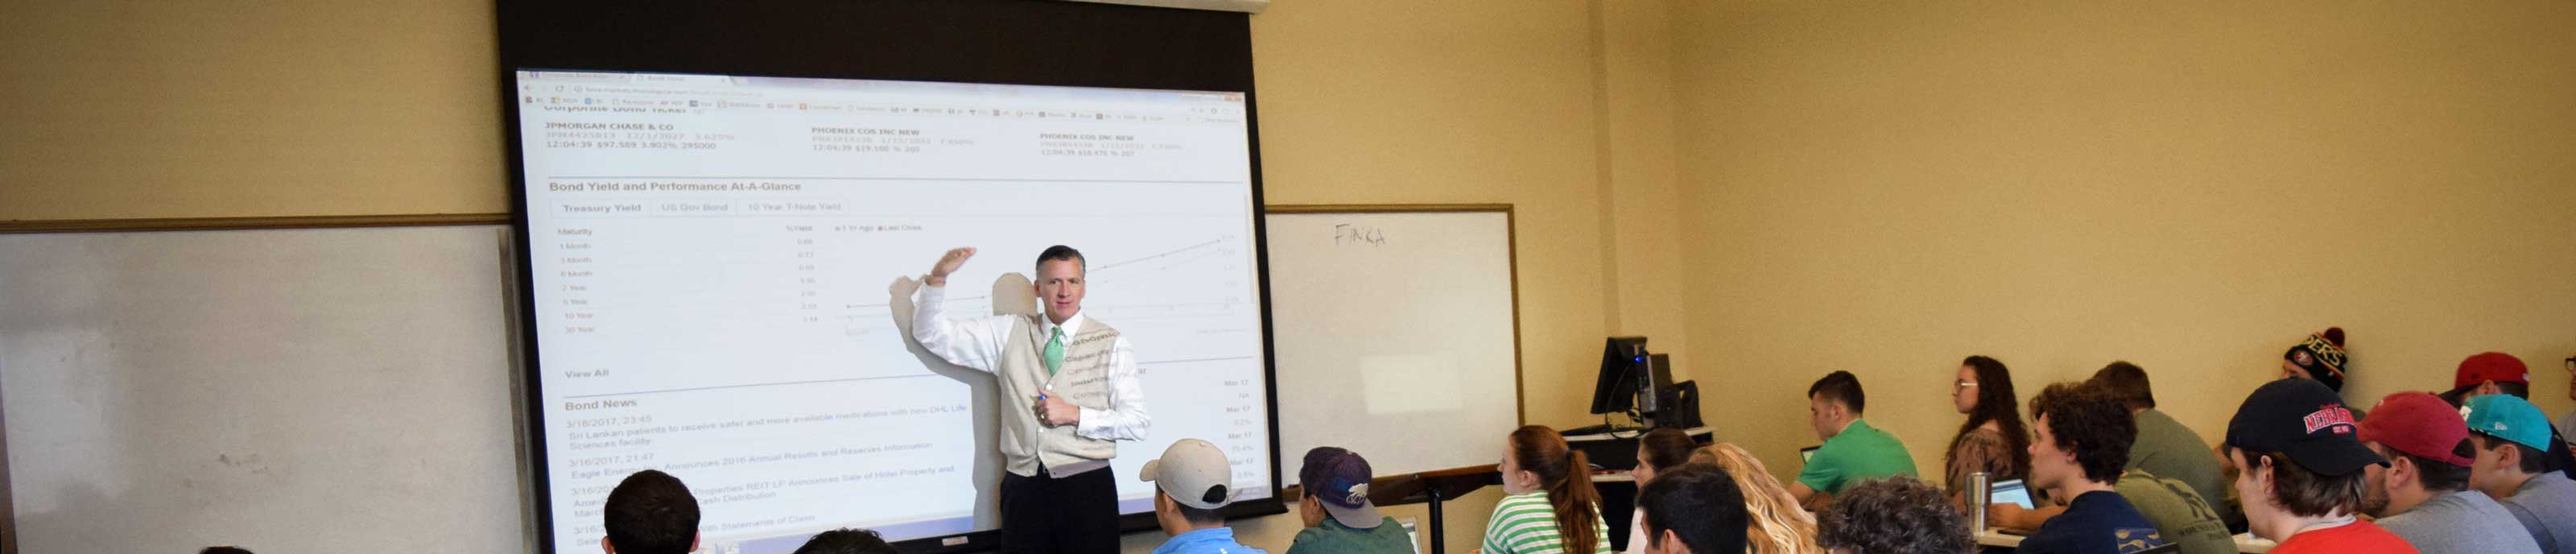 Dr. Michael King teaches class